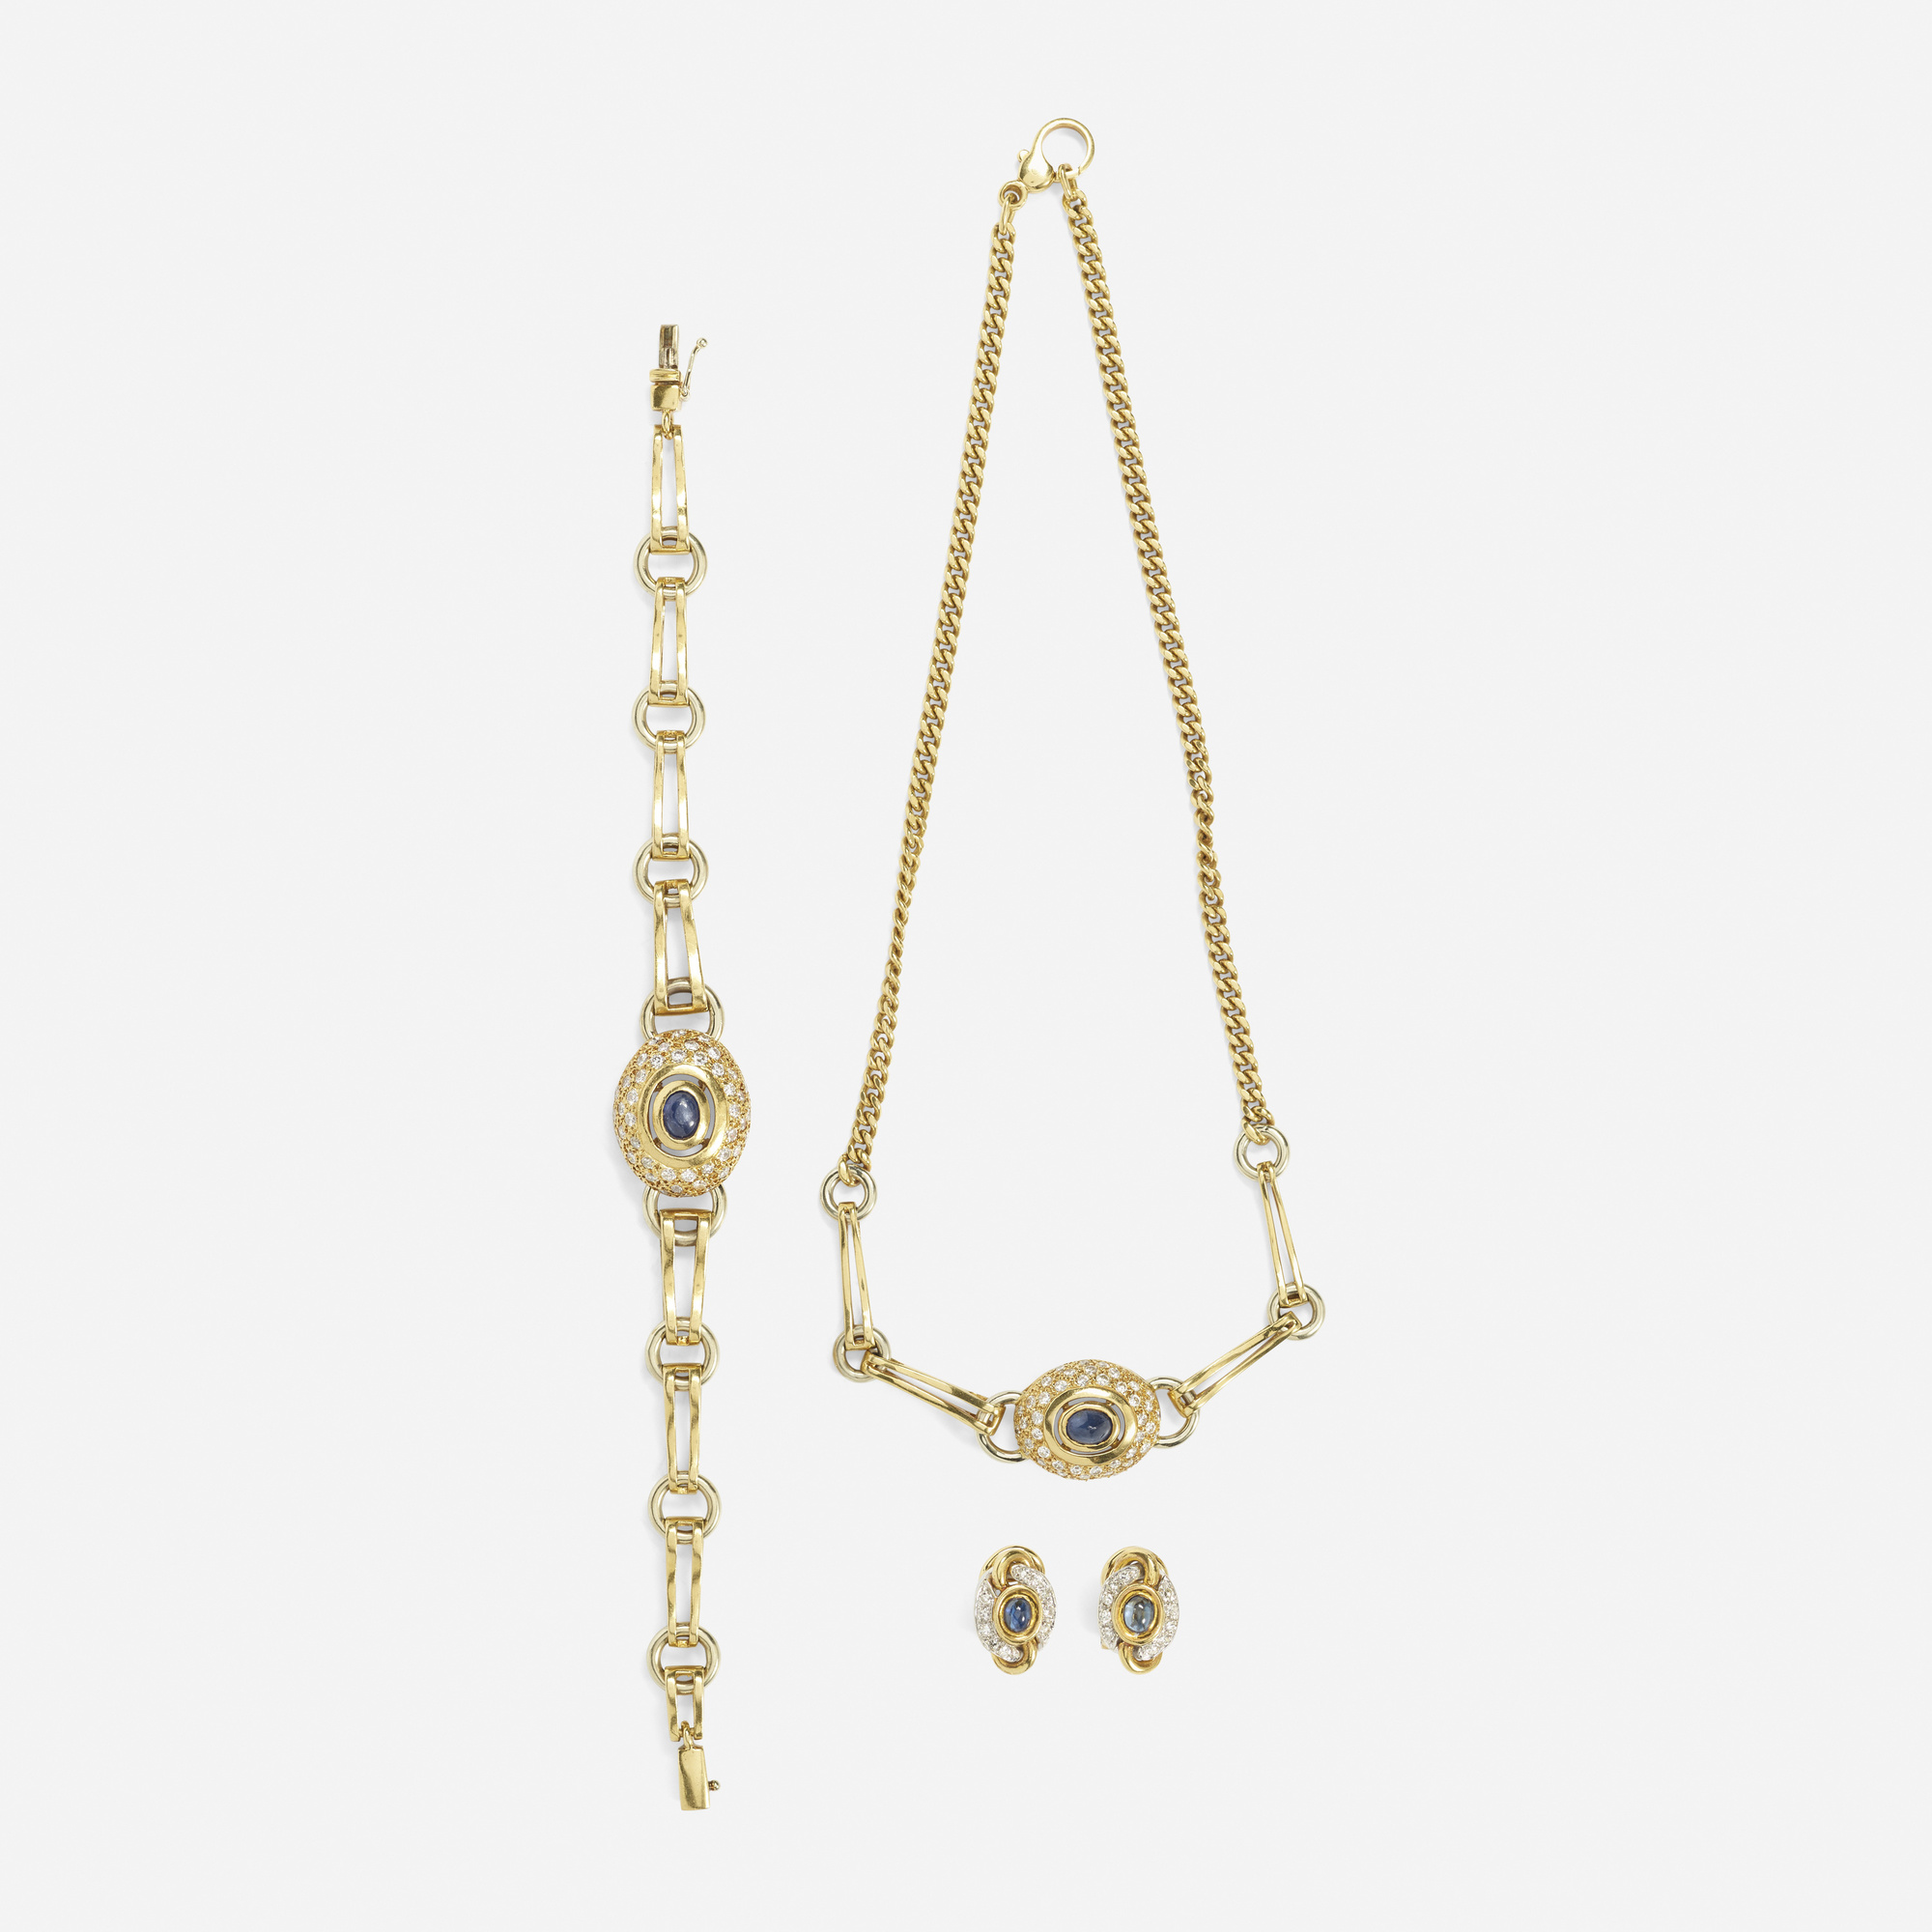 172: Gucci / A suite of gold, diamond and sapphire jewelry (1 of 1)